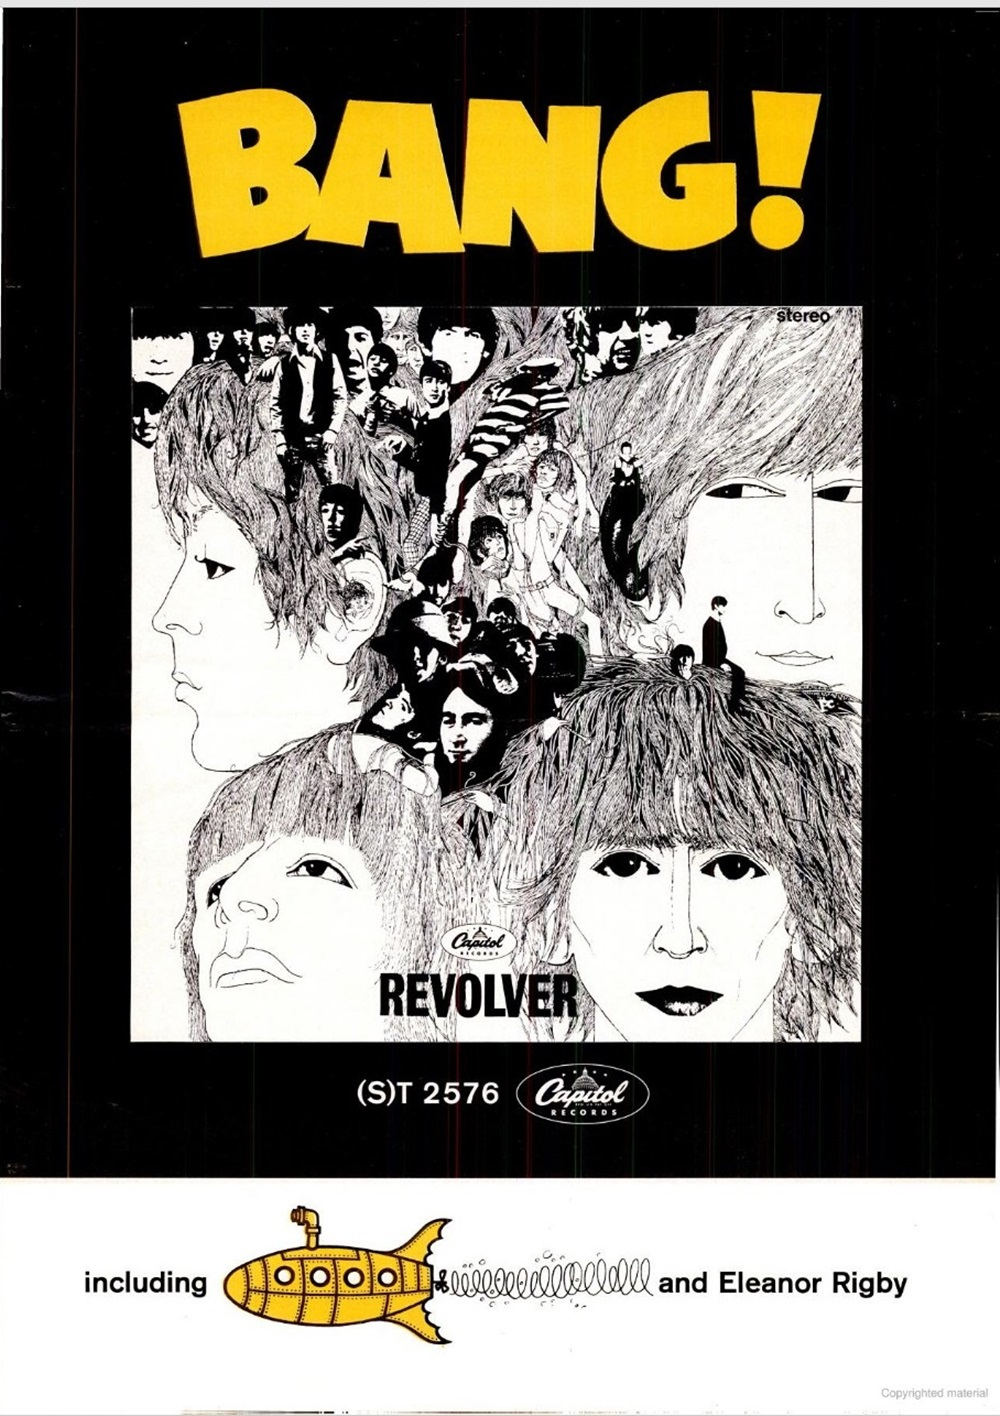 The Beatles In The News: The Beatles -